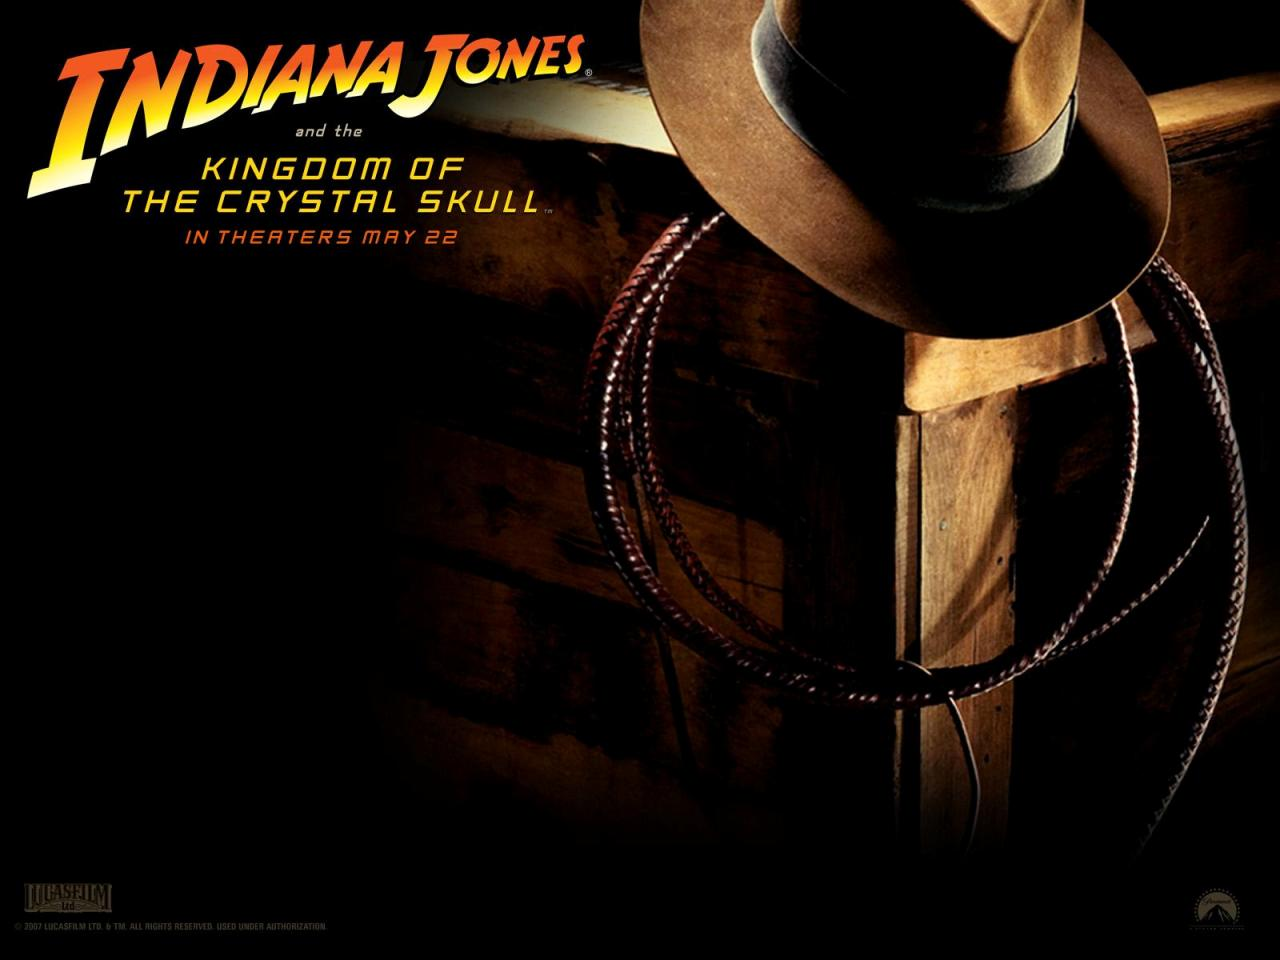 Indiana Jones 4 - Il Regno del Teschio di Cristallo - Kingdom of the Crystal Skull - Cappello e Lazzo - Hat and Lazzo - Sombrero y Lazzo